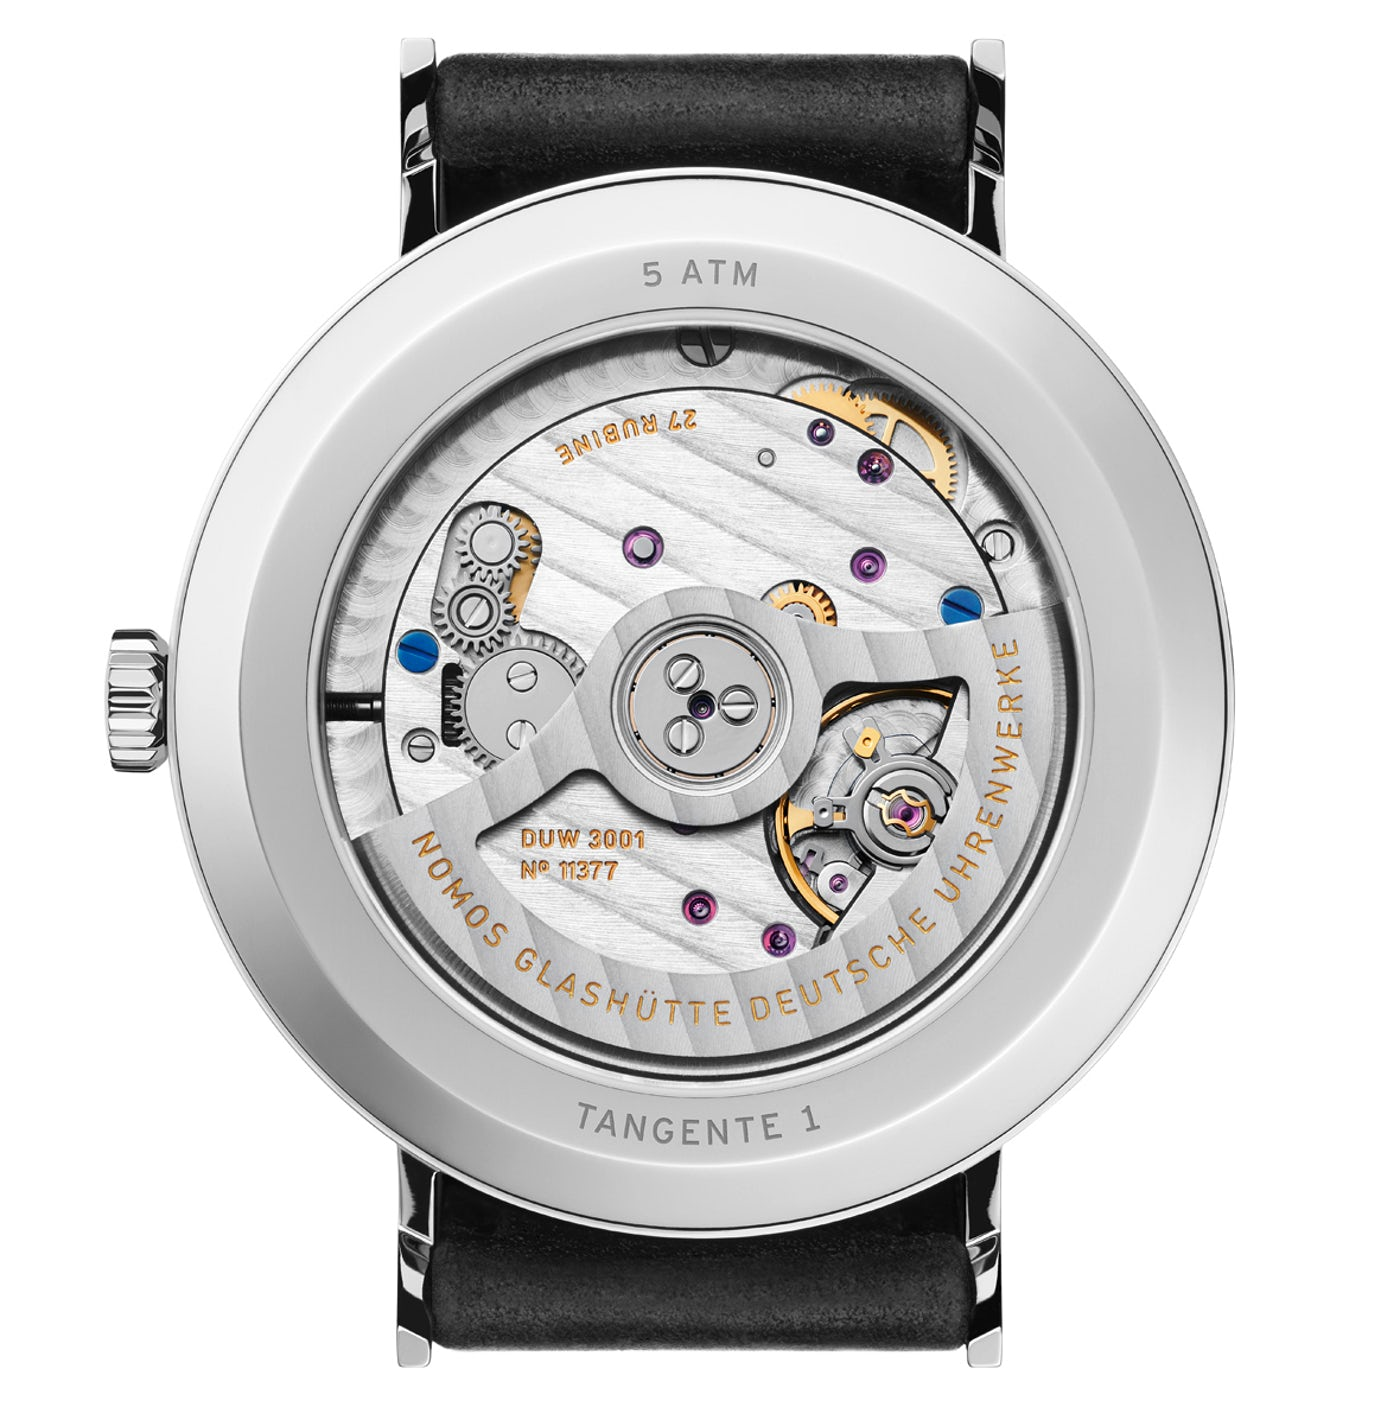 A closer look at the Nomos DUW 3001 Movement